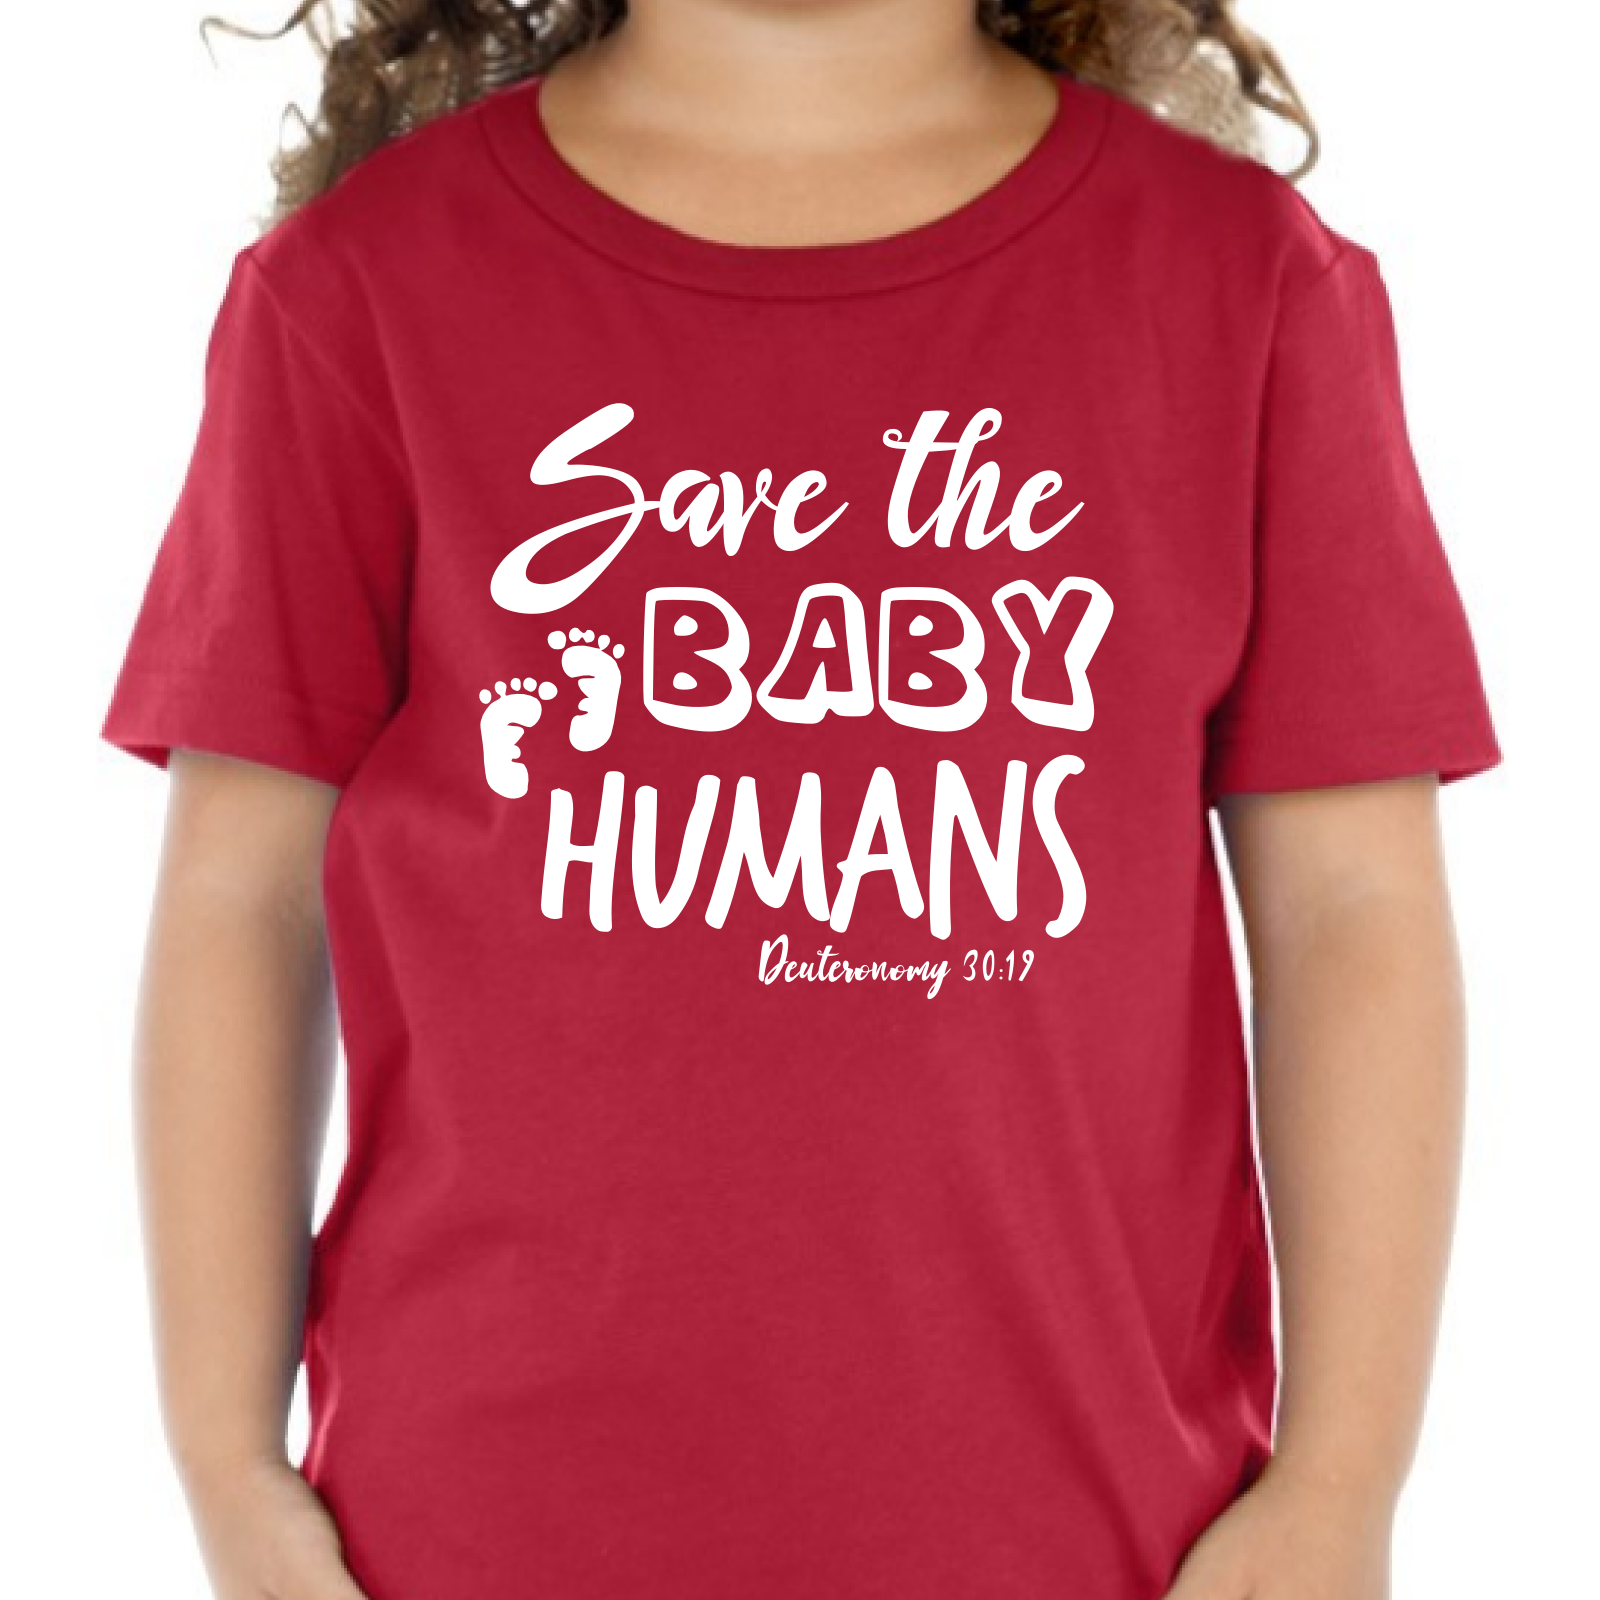 Save the Baby Humans Tee